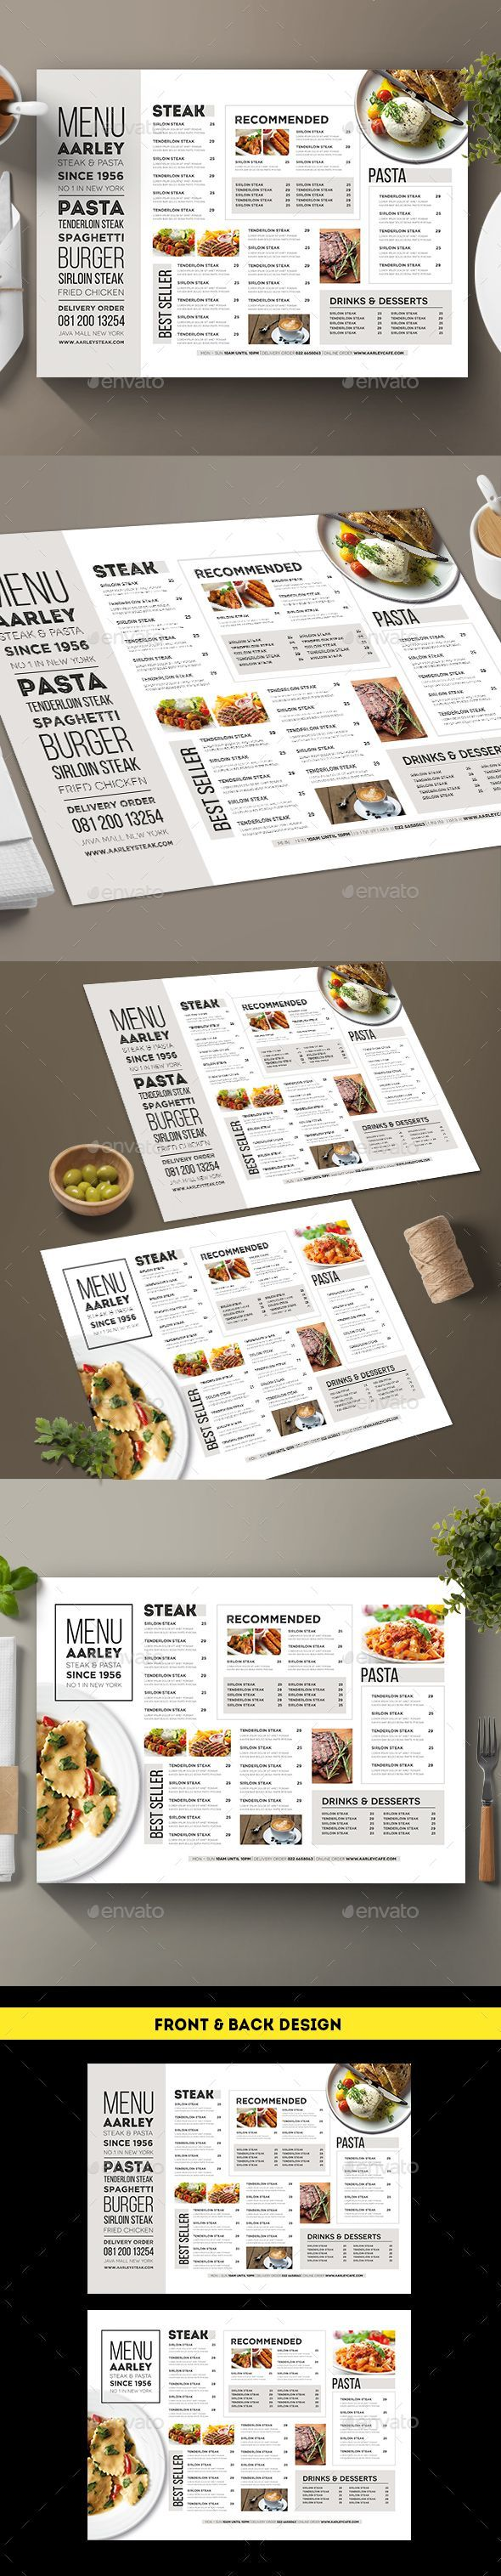 Typography Menu — AI Illustrator #menu #simple • Download ➝ https://graphicriver.net/item/typography-menu/18778849?ref=pxcr